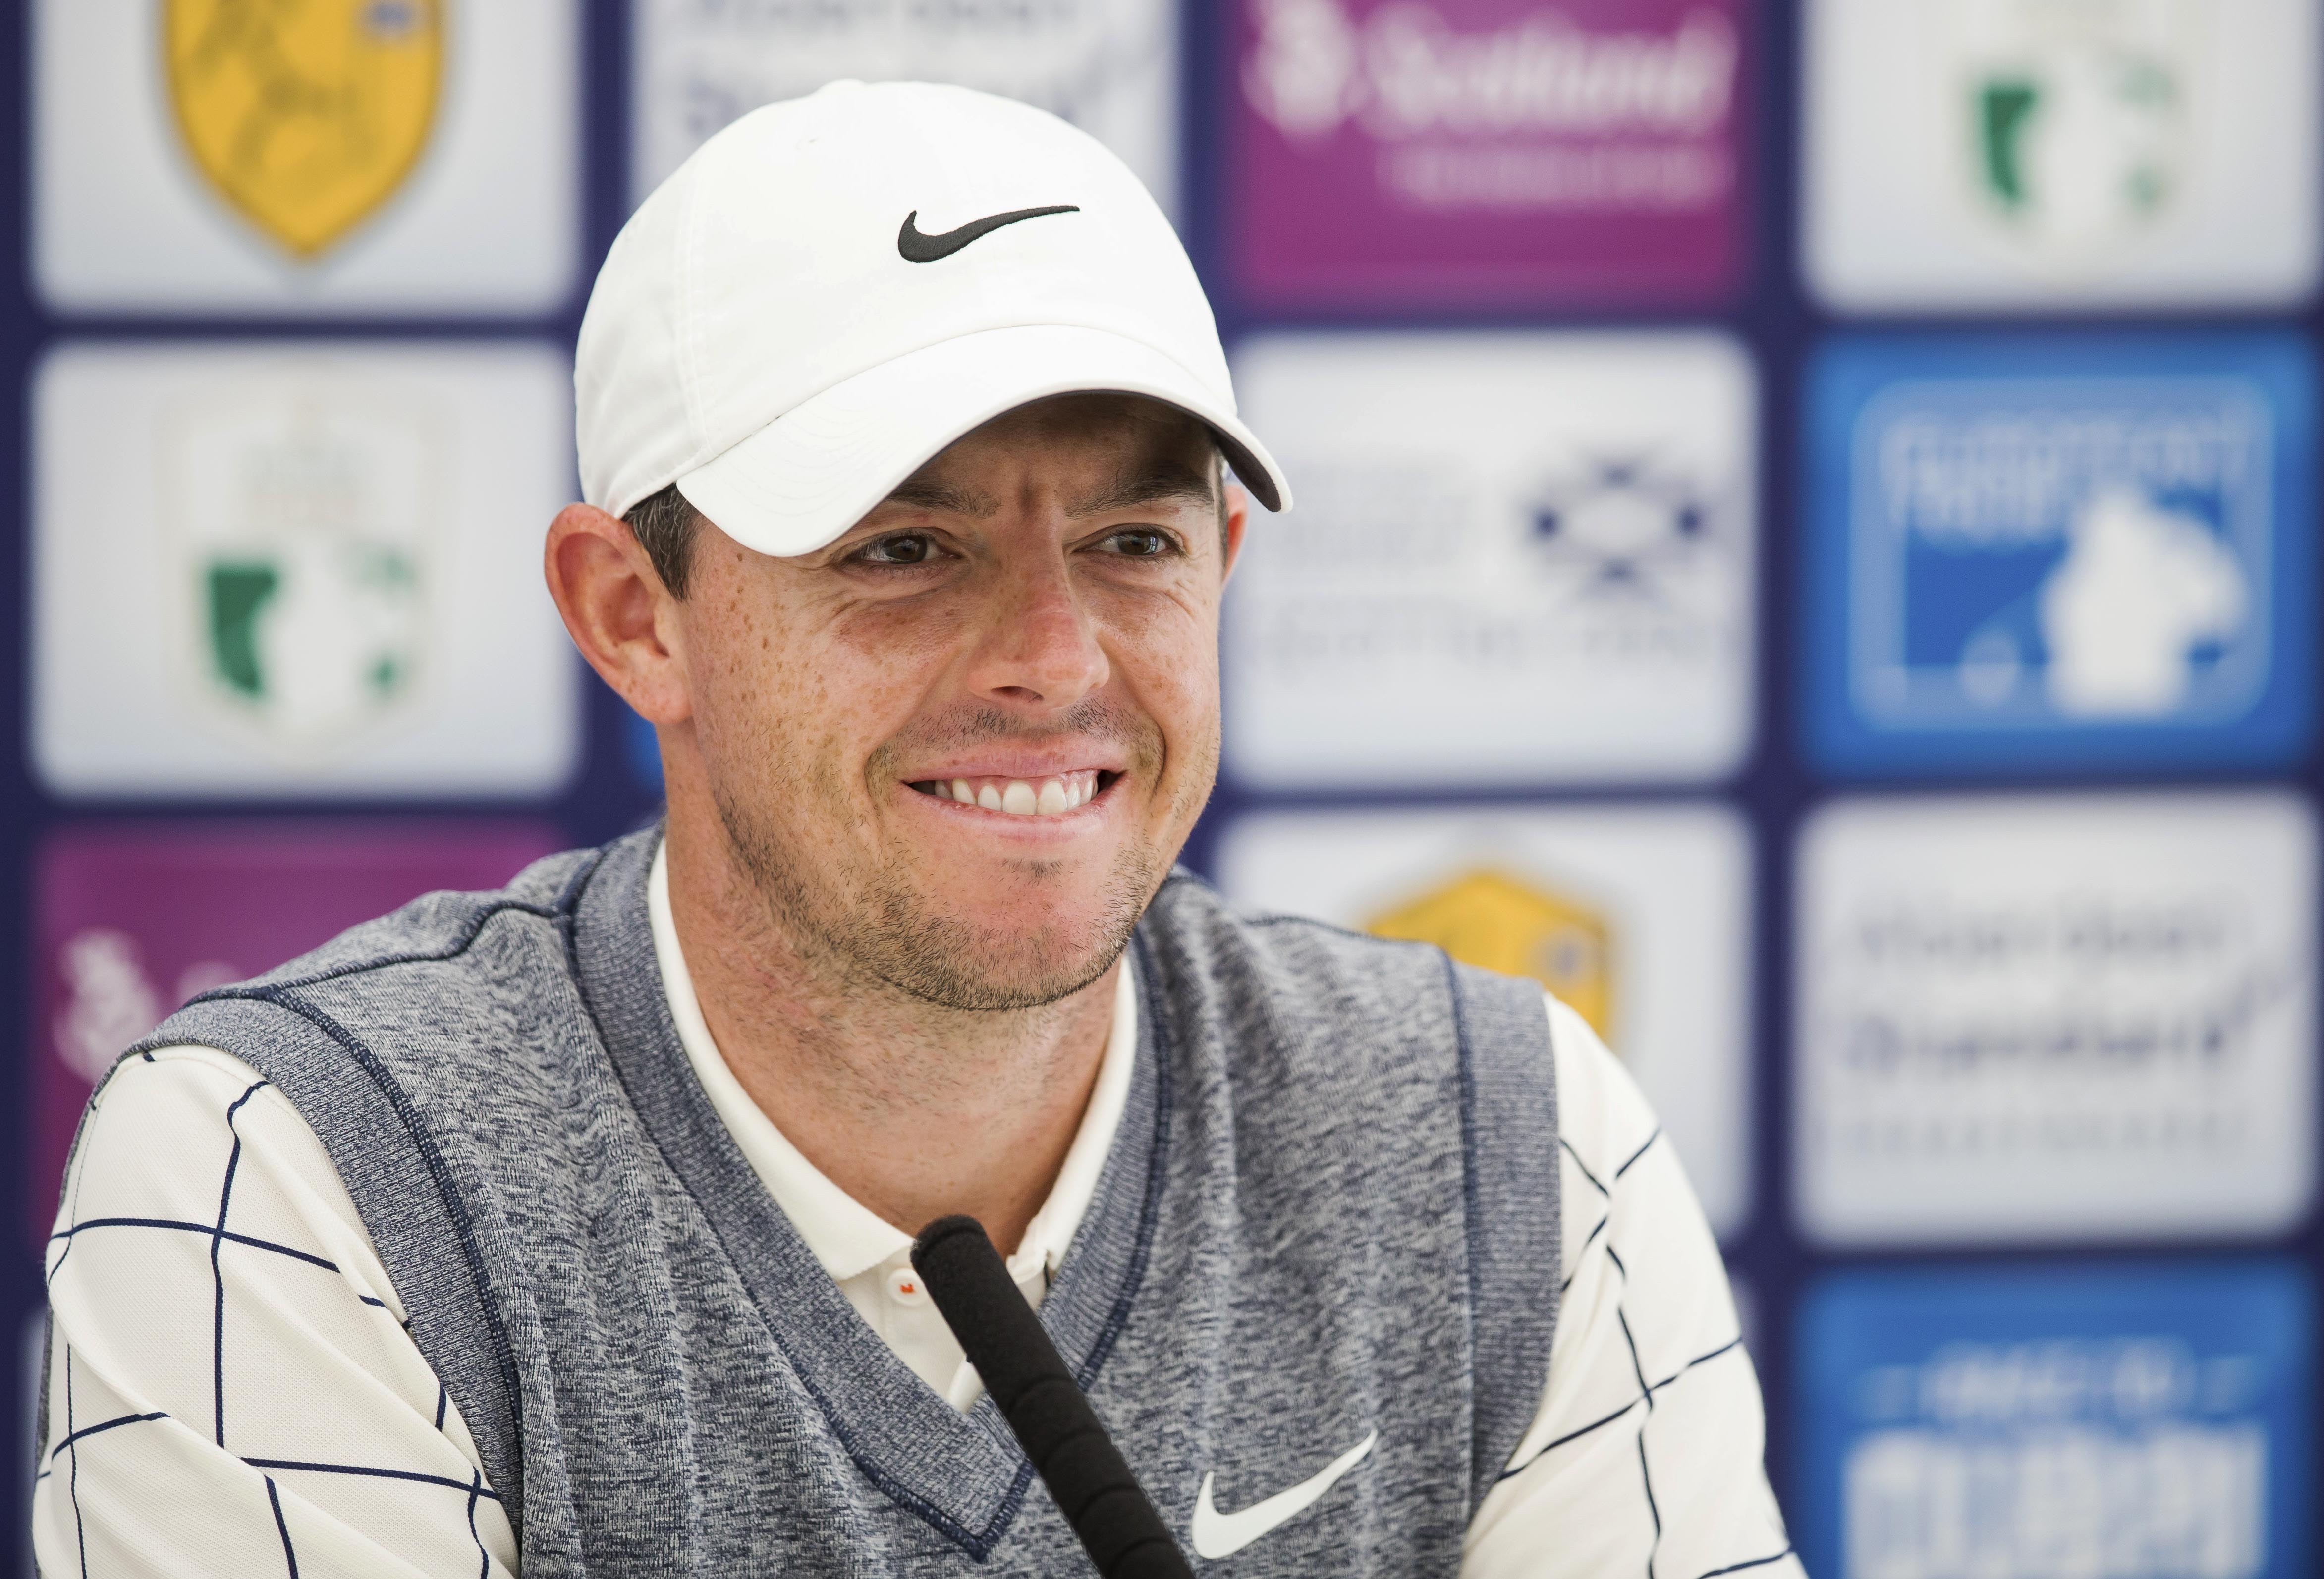 Rory McIlroy addresses the media ahead of the Scottish Open.